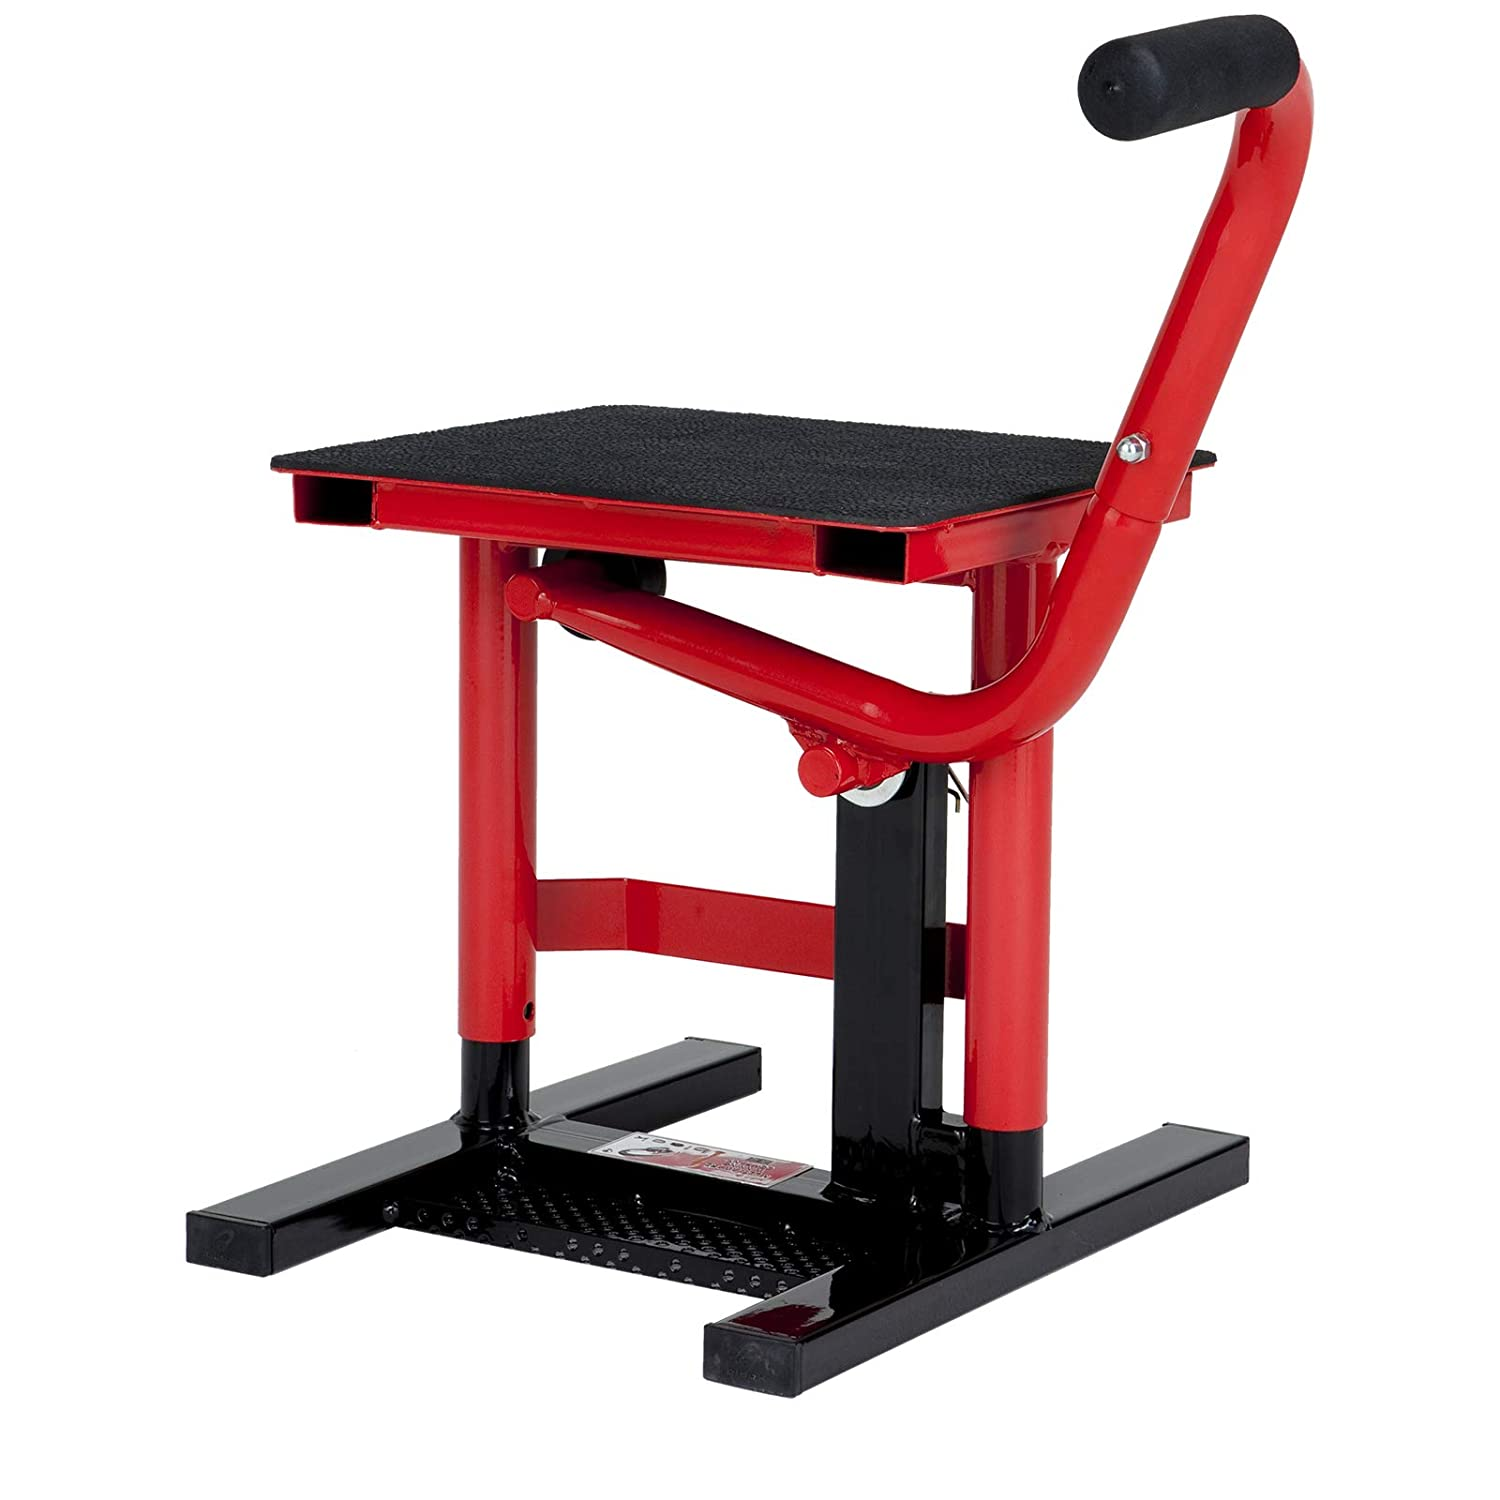 5069 - Black Pro Range B5069 MX Lift Stand Black Brand Motorcycle Clothing